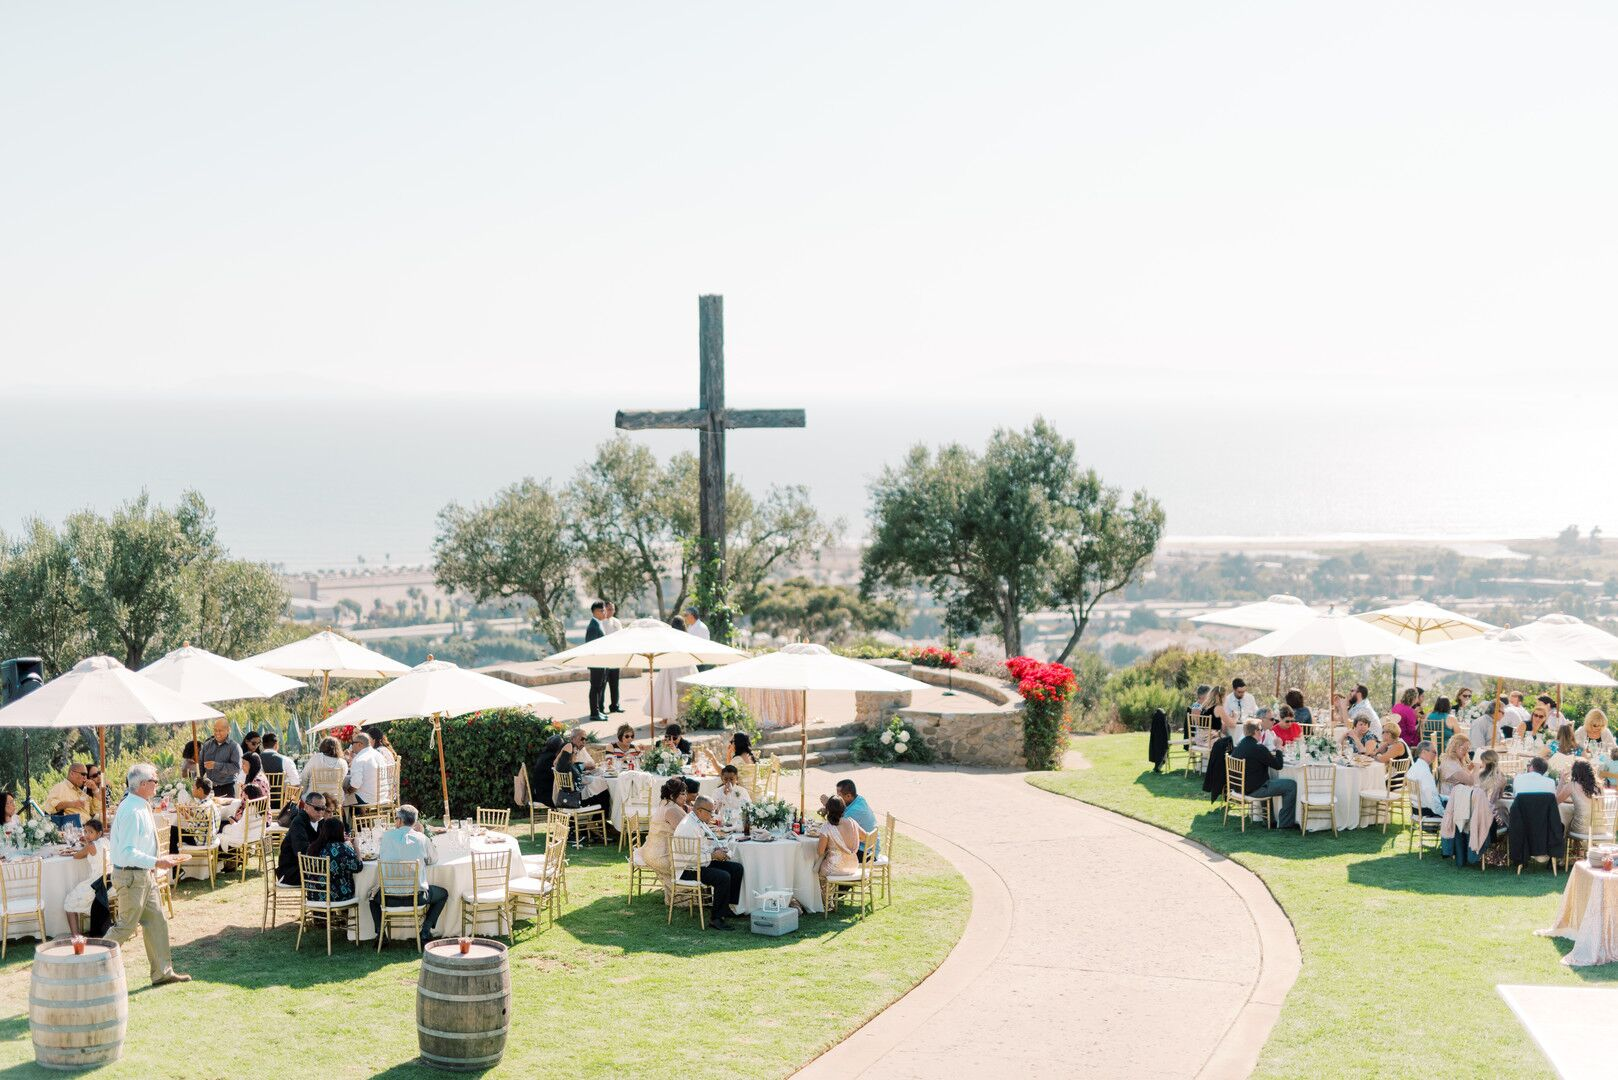 wwww.santabarbawedding.com | Planner: Vintage Heart Events | Ceremony Venue: Serra Cross Park | Photographer: Haley Richter Photography | Reception Dinner Site